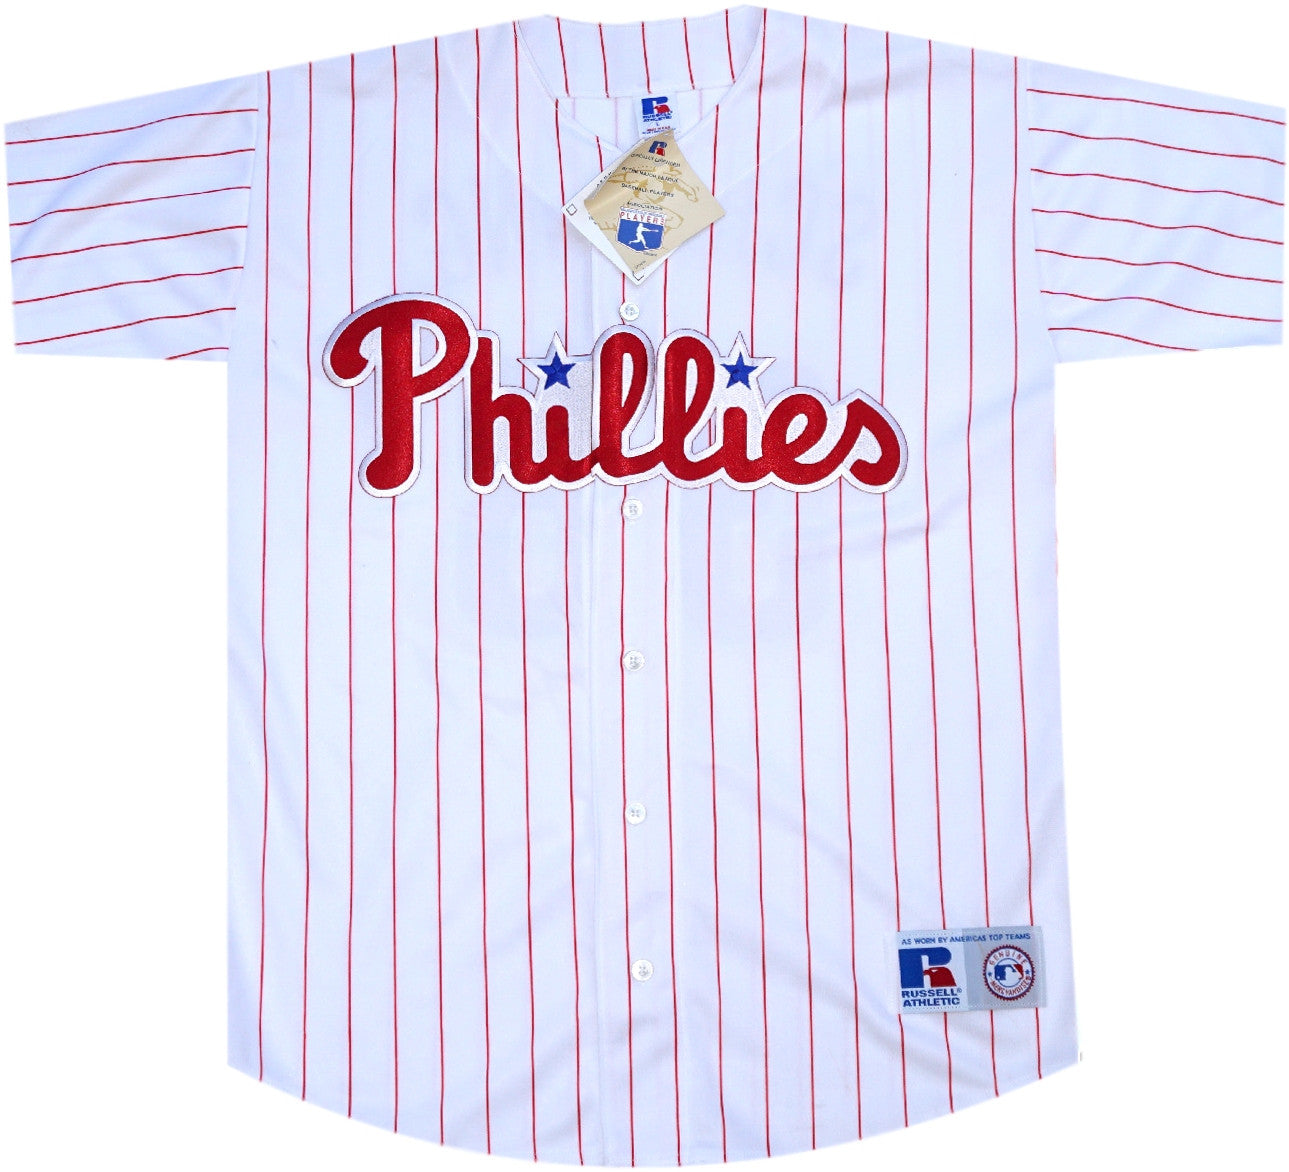 Curt Schilling Phillies Jersey - And Still